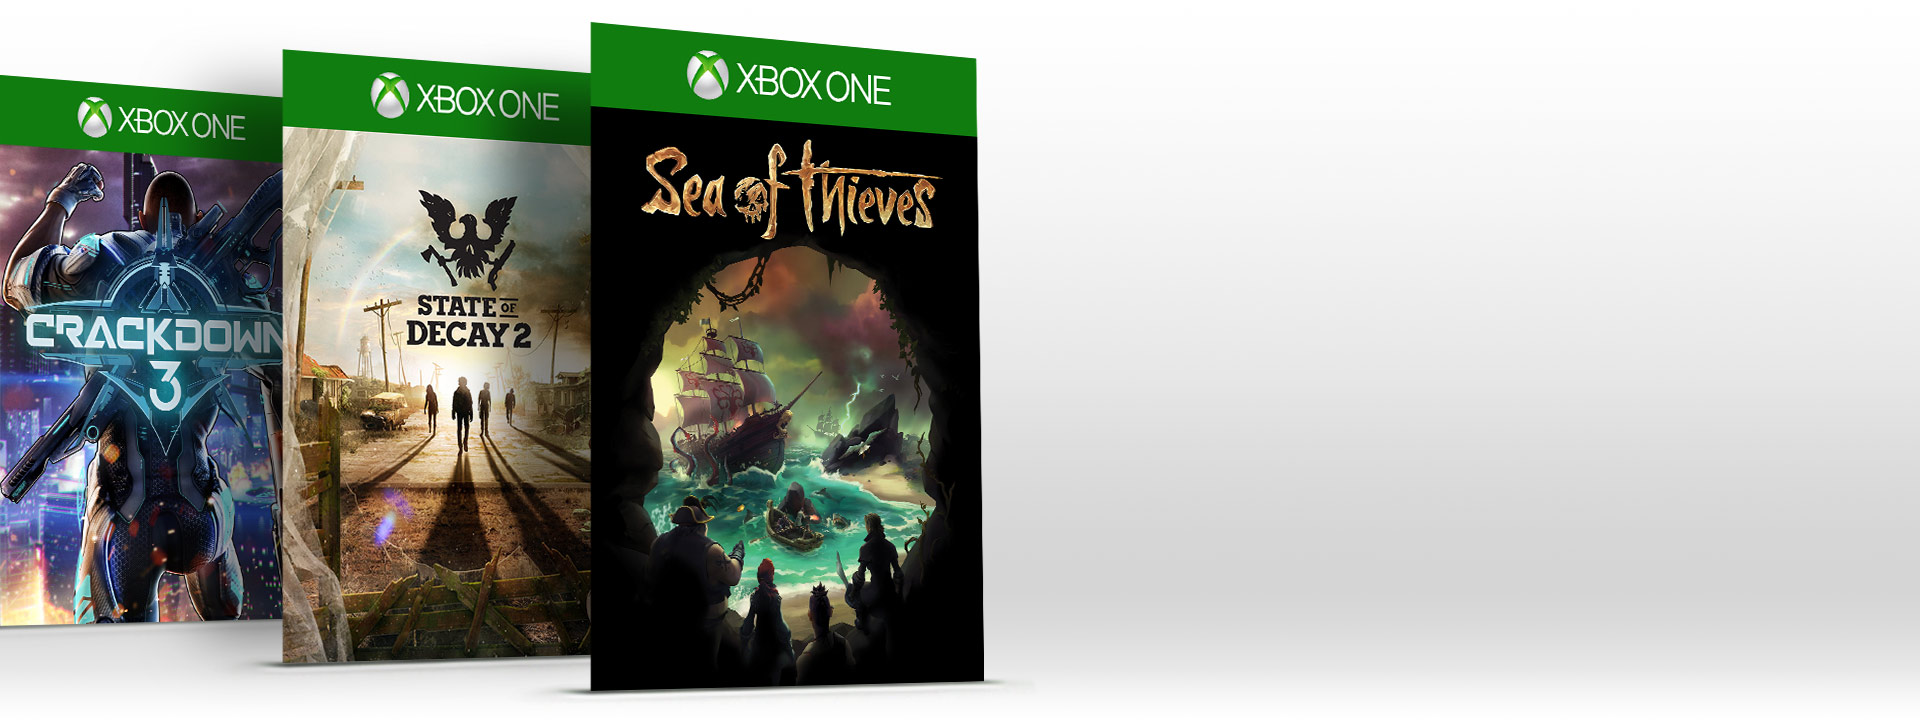 Trois excellents jeux Xbox : Sea of Thieves, State of Decay 2 et Crackdown 3